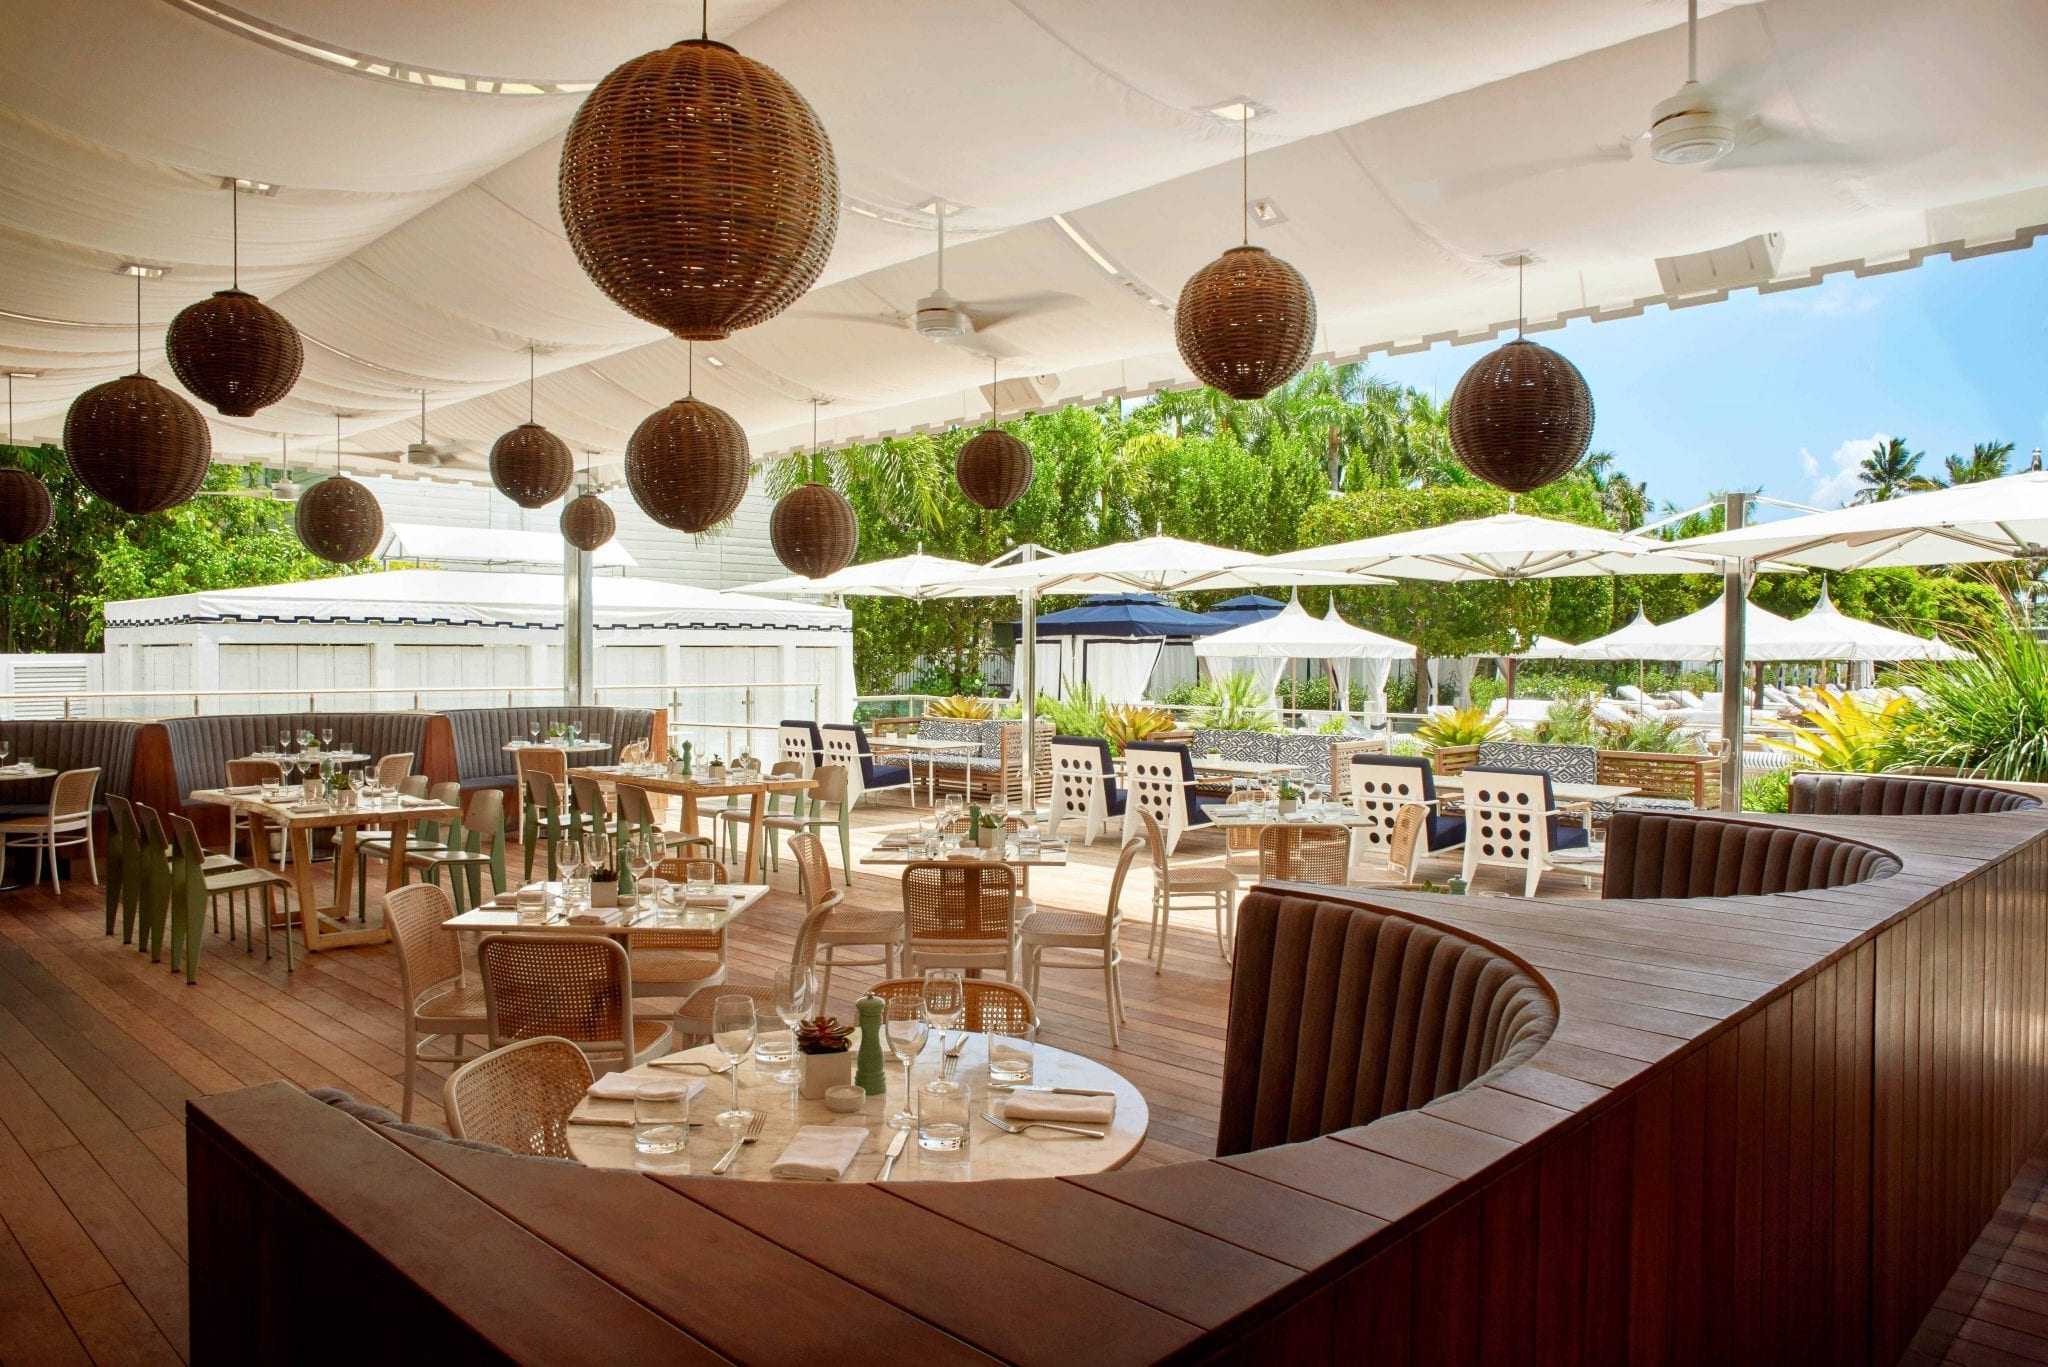 Outdoor restaurant areas with many tables and seats